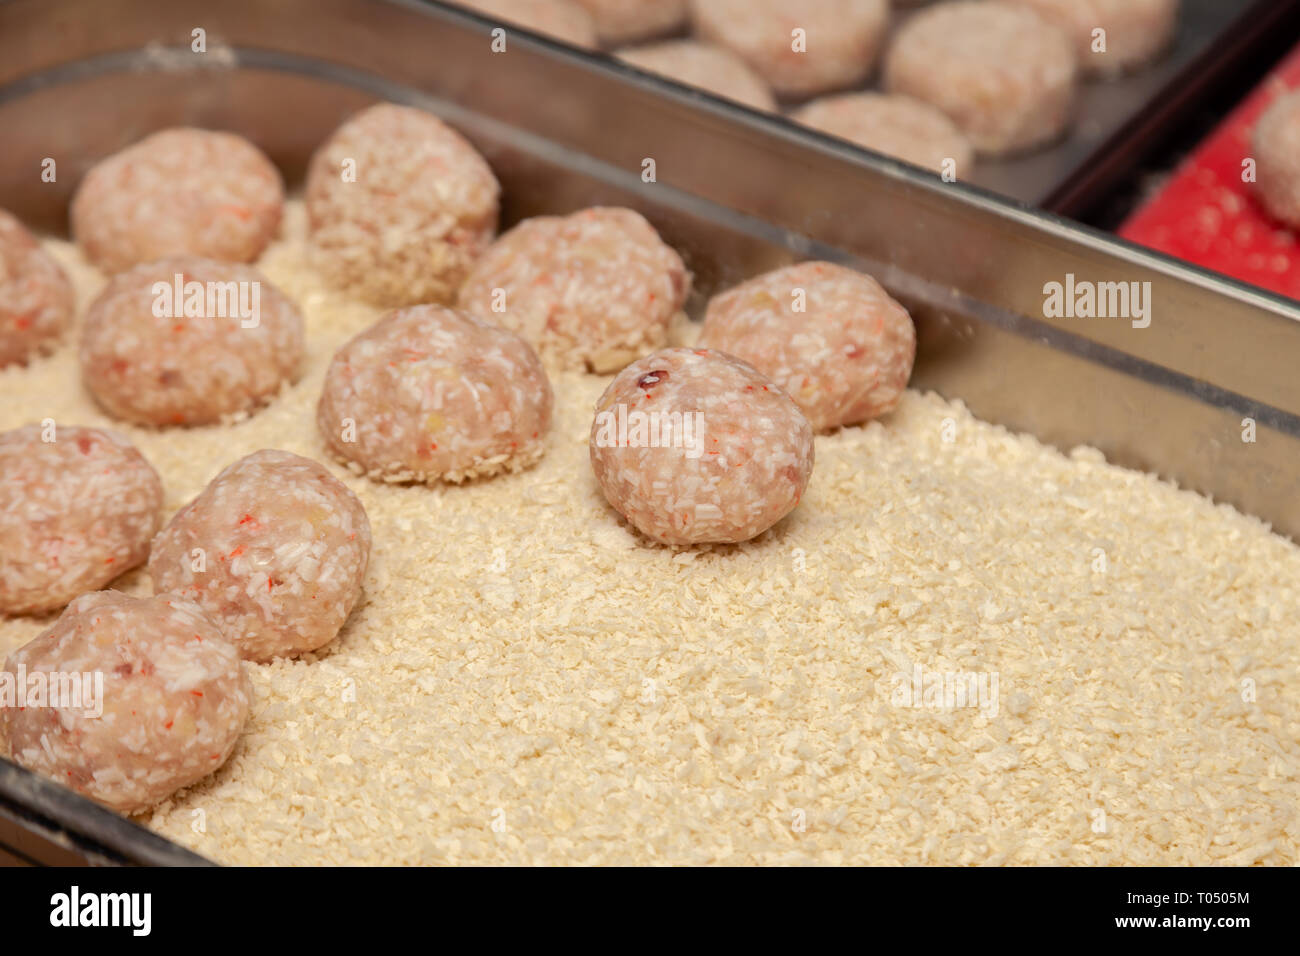 Closeup Preparation Of The Chicken Cutlets For Burgers Bread Crumbs And Butter On The Metal Kitchen Table Ingredients Concept Restaurant Business Stock Photo Alamy